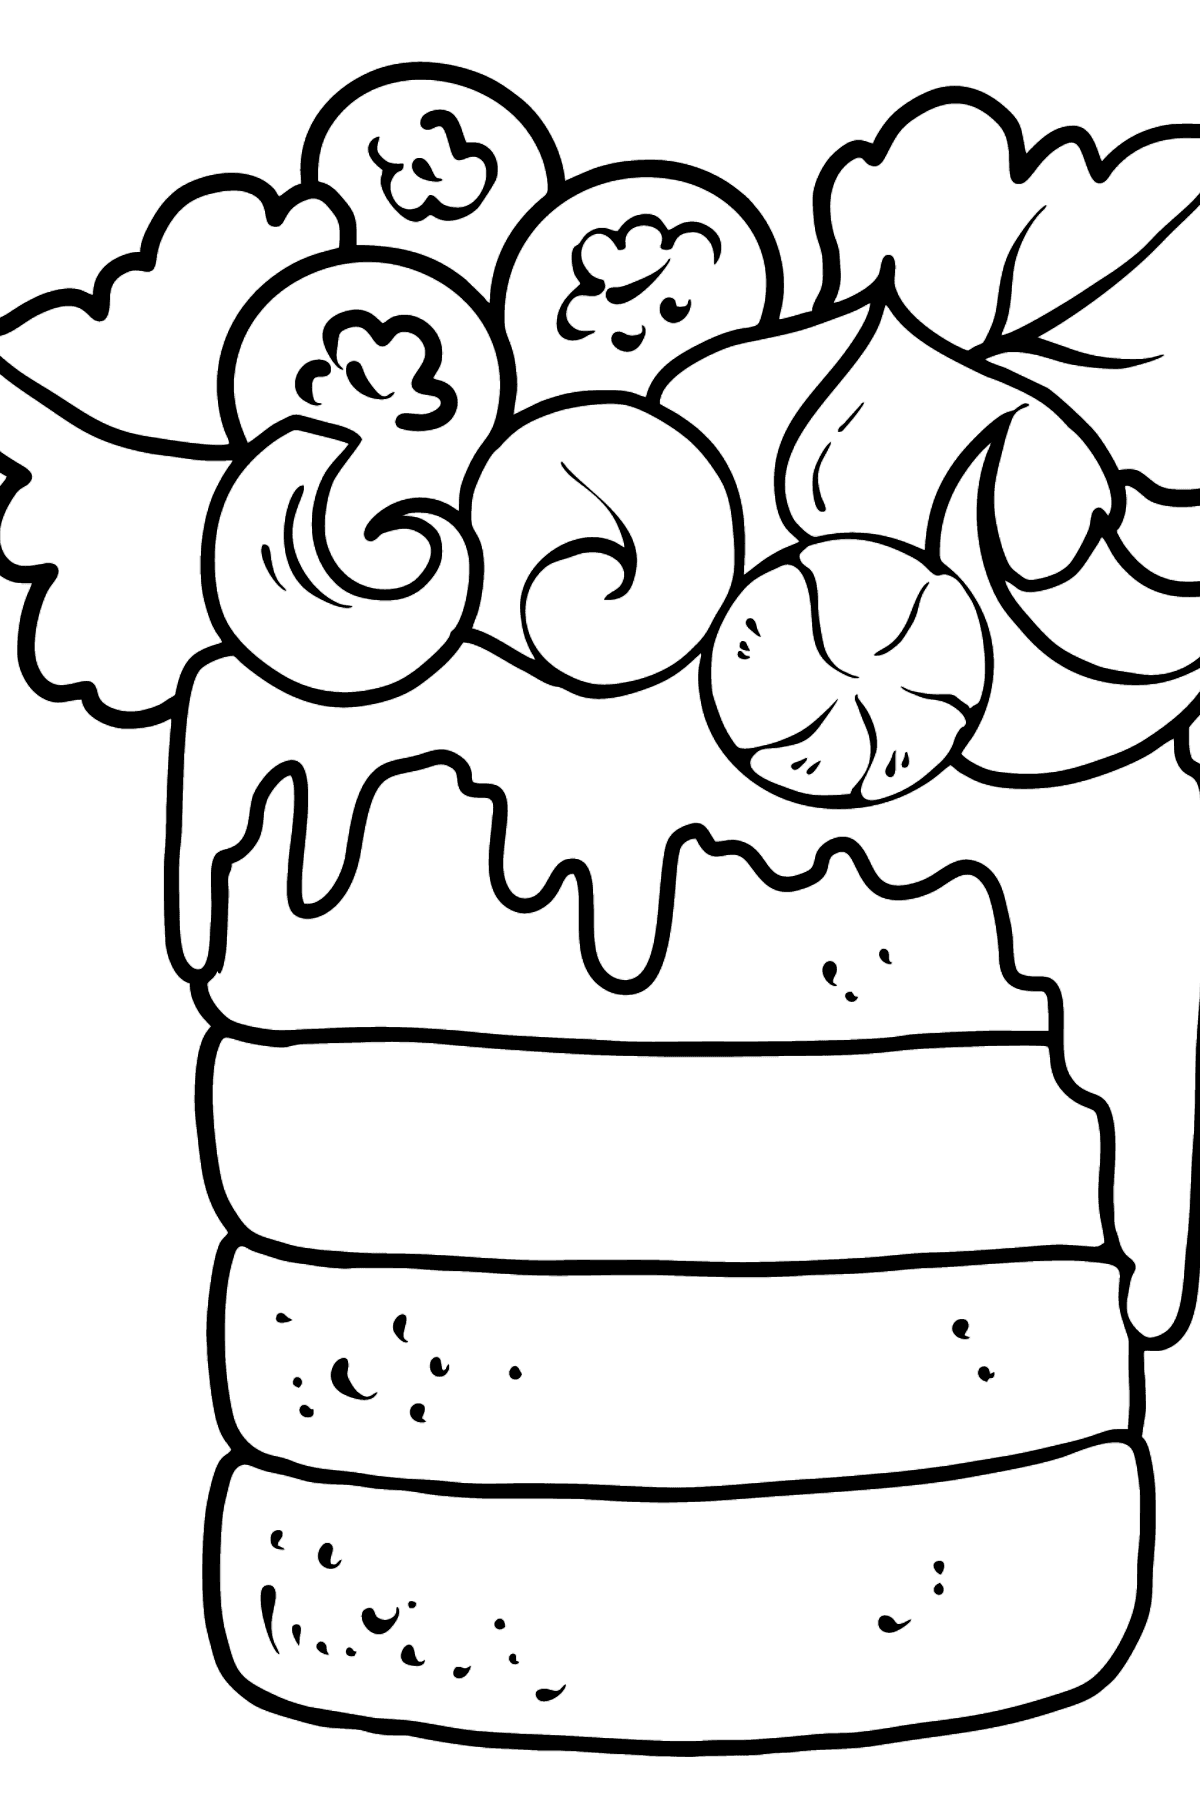 Cake coloring page - Coloring Pages for Kids